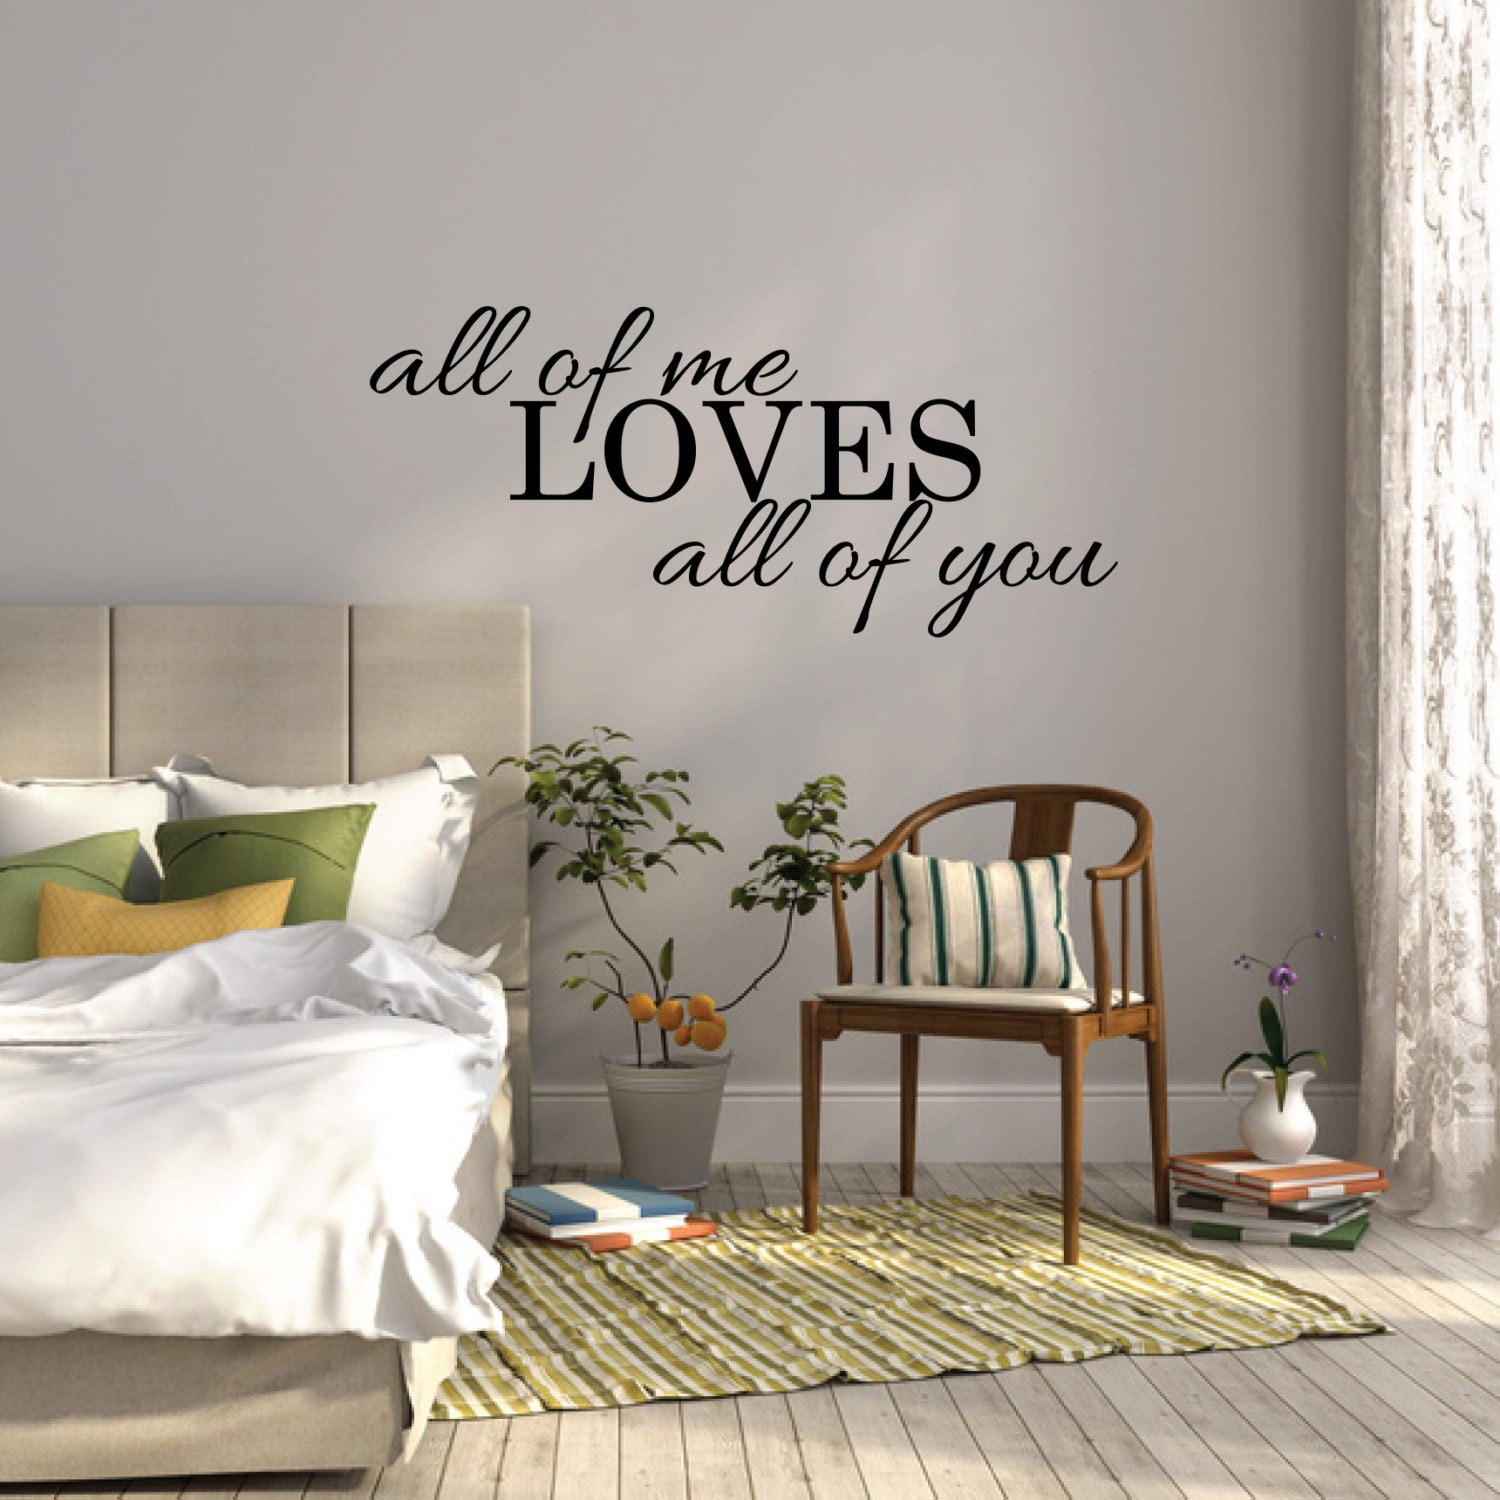 Love Quote Wall Decals All Of Me Loves All Of You Wall Sticker Bedroom Wall Decal